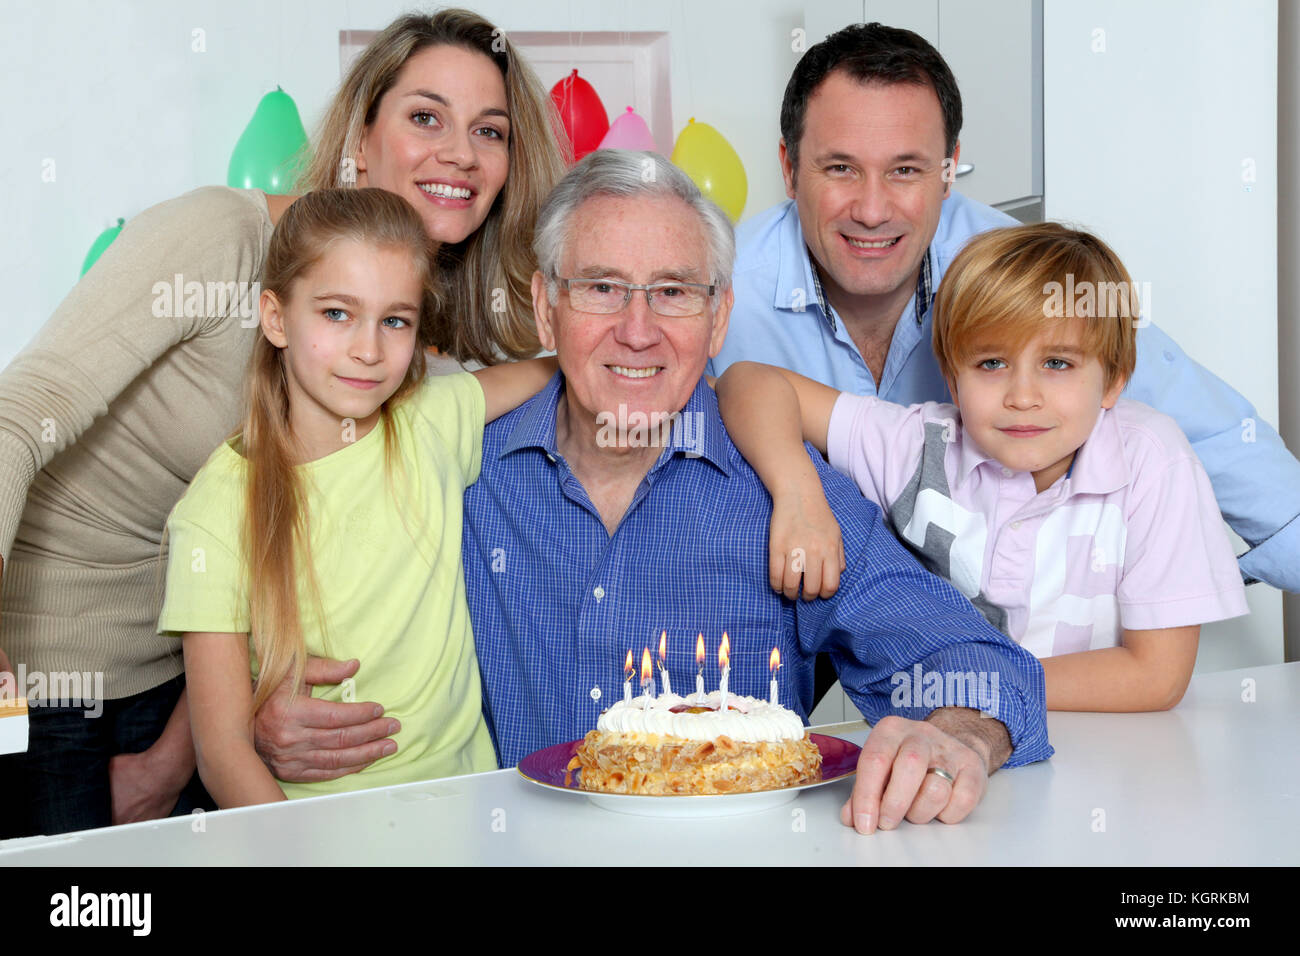 Family Celebrating Grandfathers Birthday